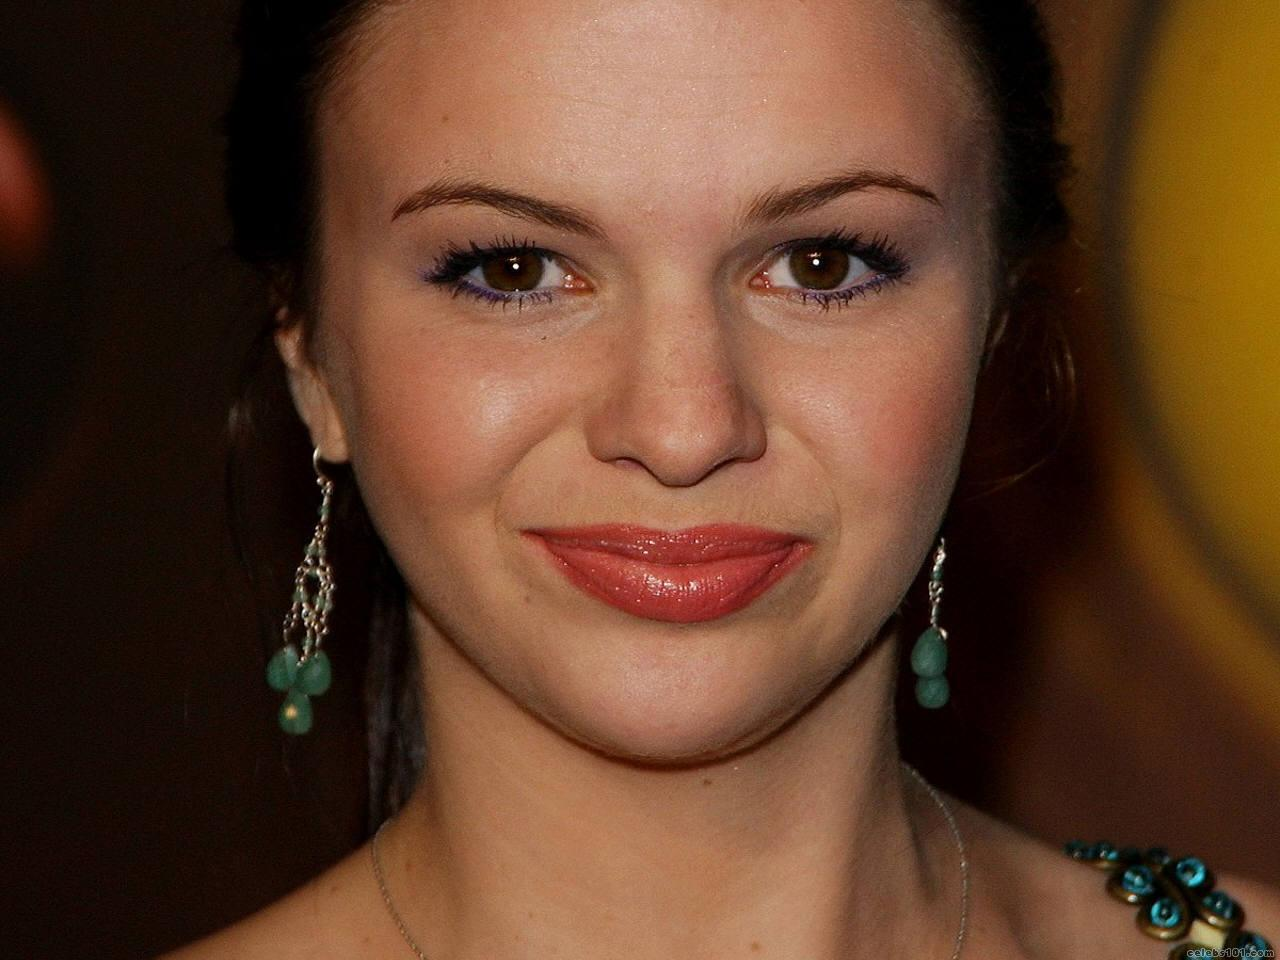 Naked Pics Of Amber Tamblyn Naked Pics Of Amber Tamblyn